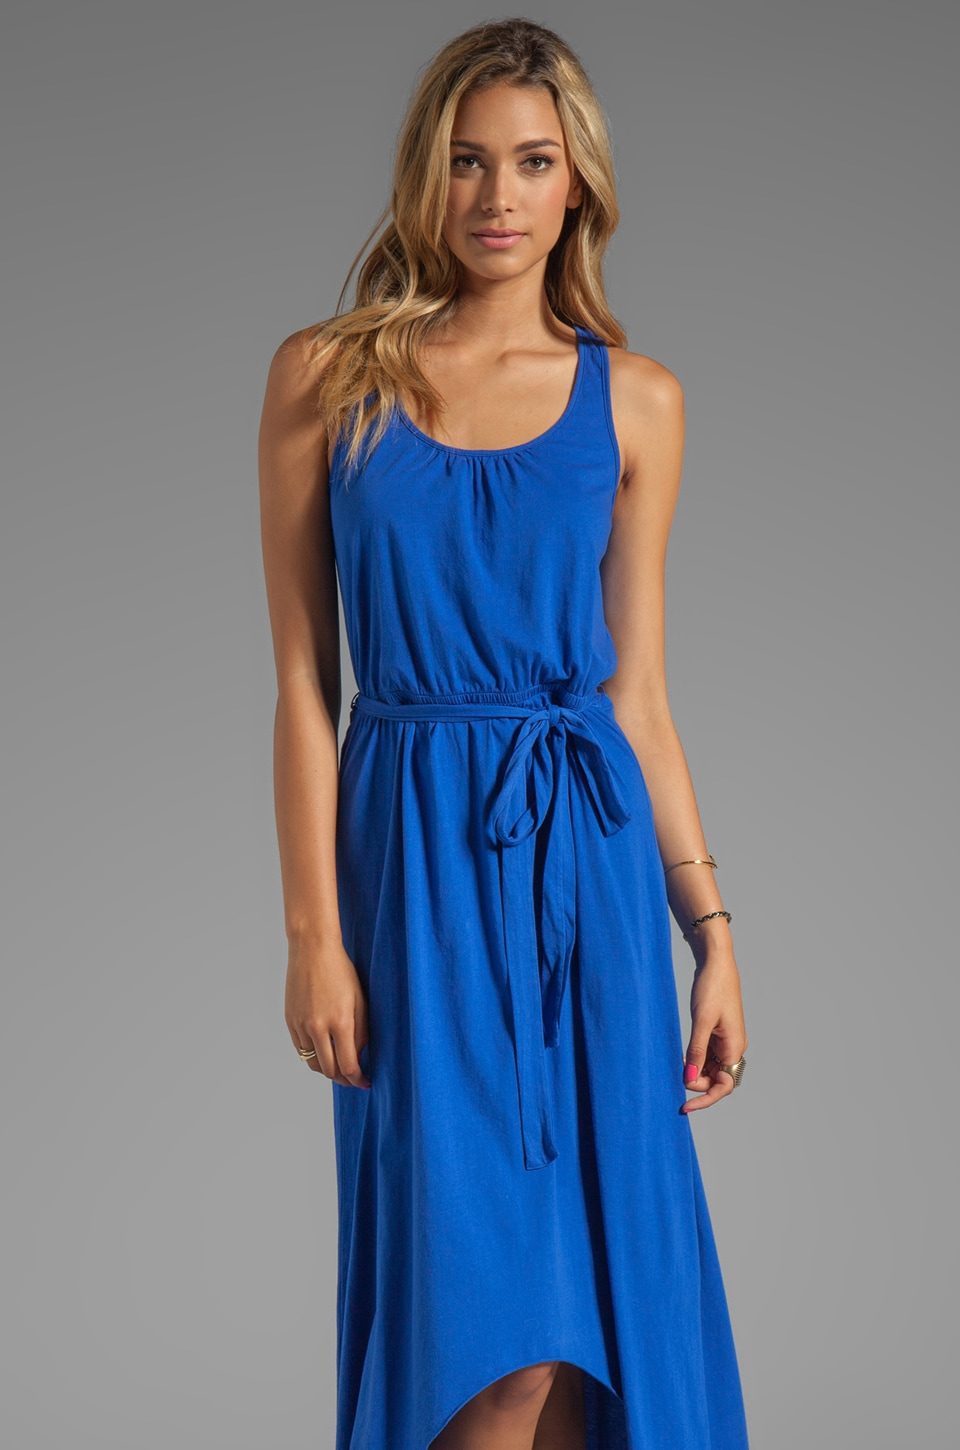 Michael Stars Jersey Knit Sleeveless Scoop Neck Racerback Hi-Lo Maxi Dress in Crest